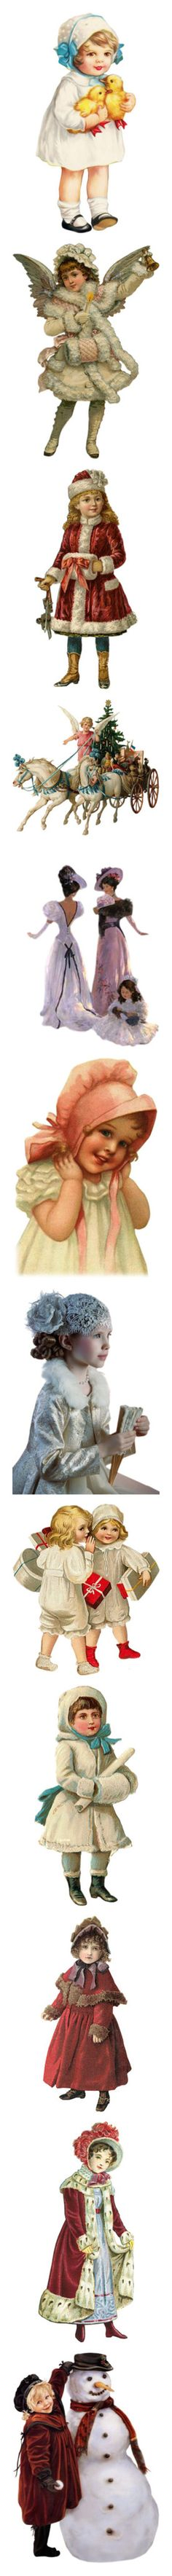 """Victorian"" by kim-mcculley ❤ liked on Polyvore featuring easter, christmas, natale, angels, navidad, winter, religious, victorian, vintage and people"